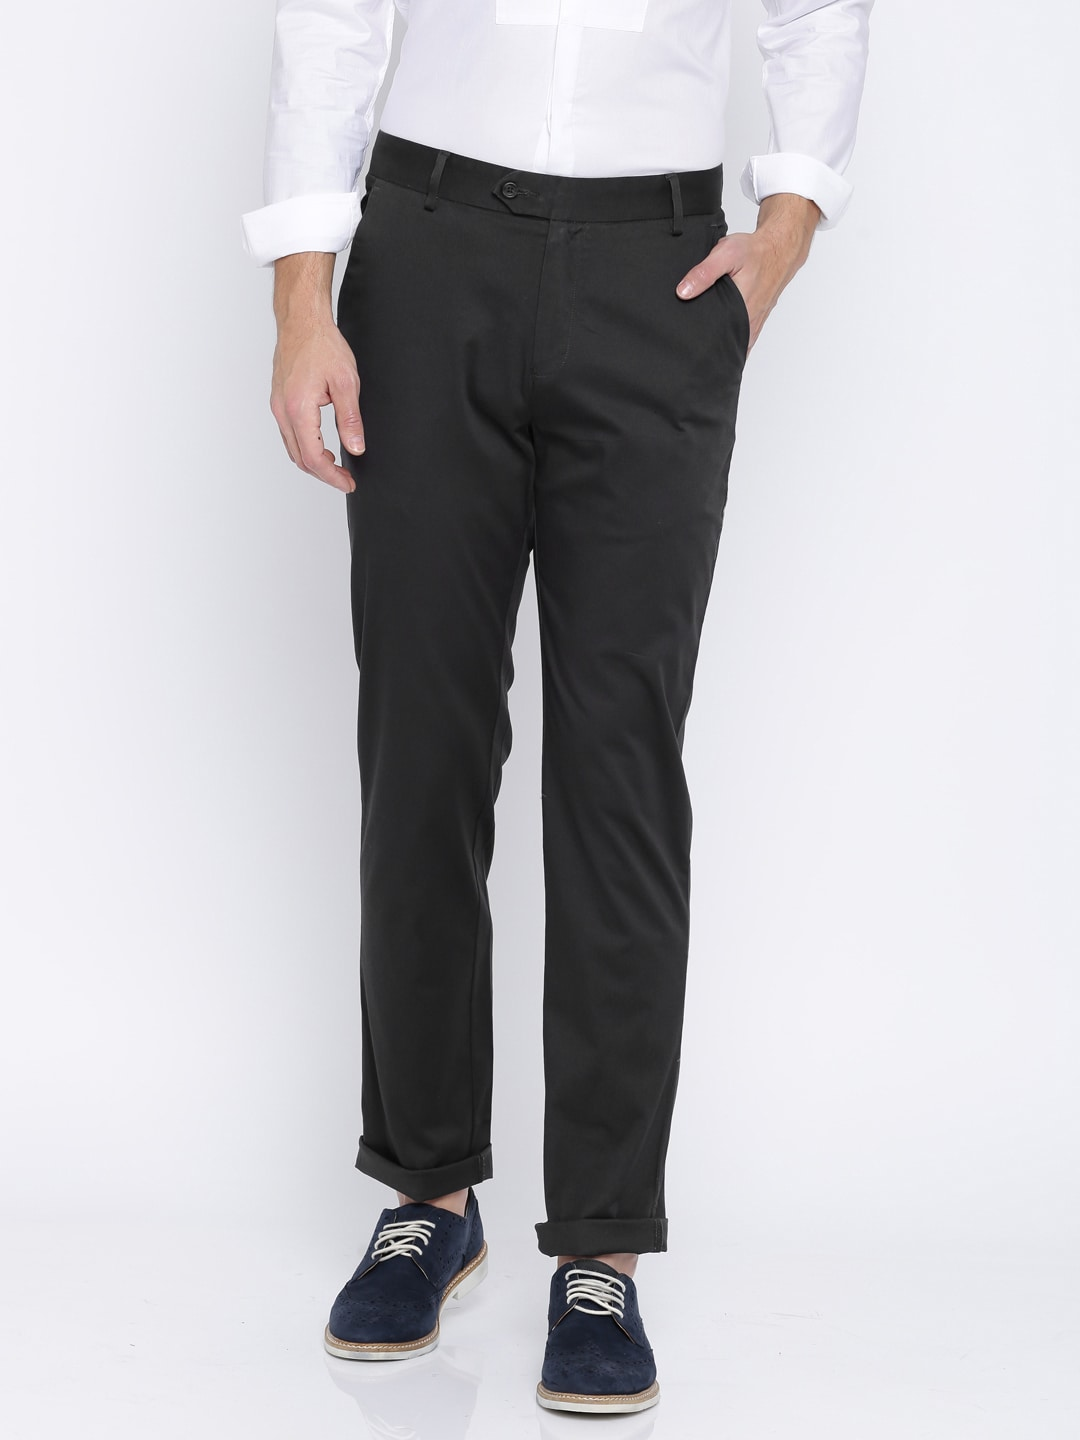 Peter England Men Charcoal Grey Slim Fit Solid Chinos image